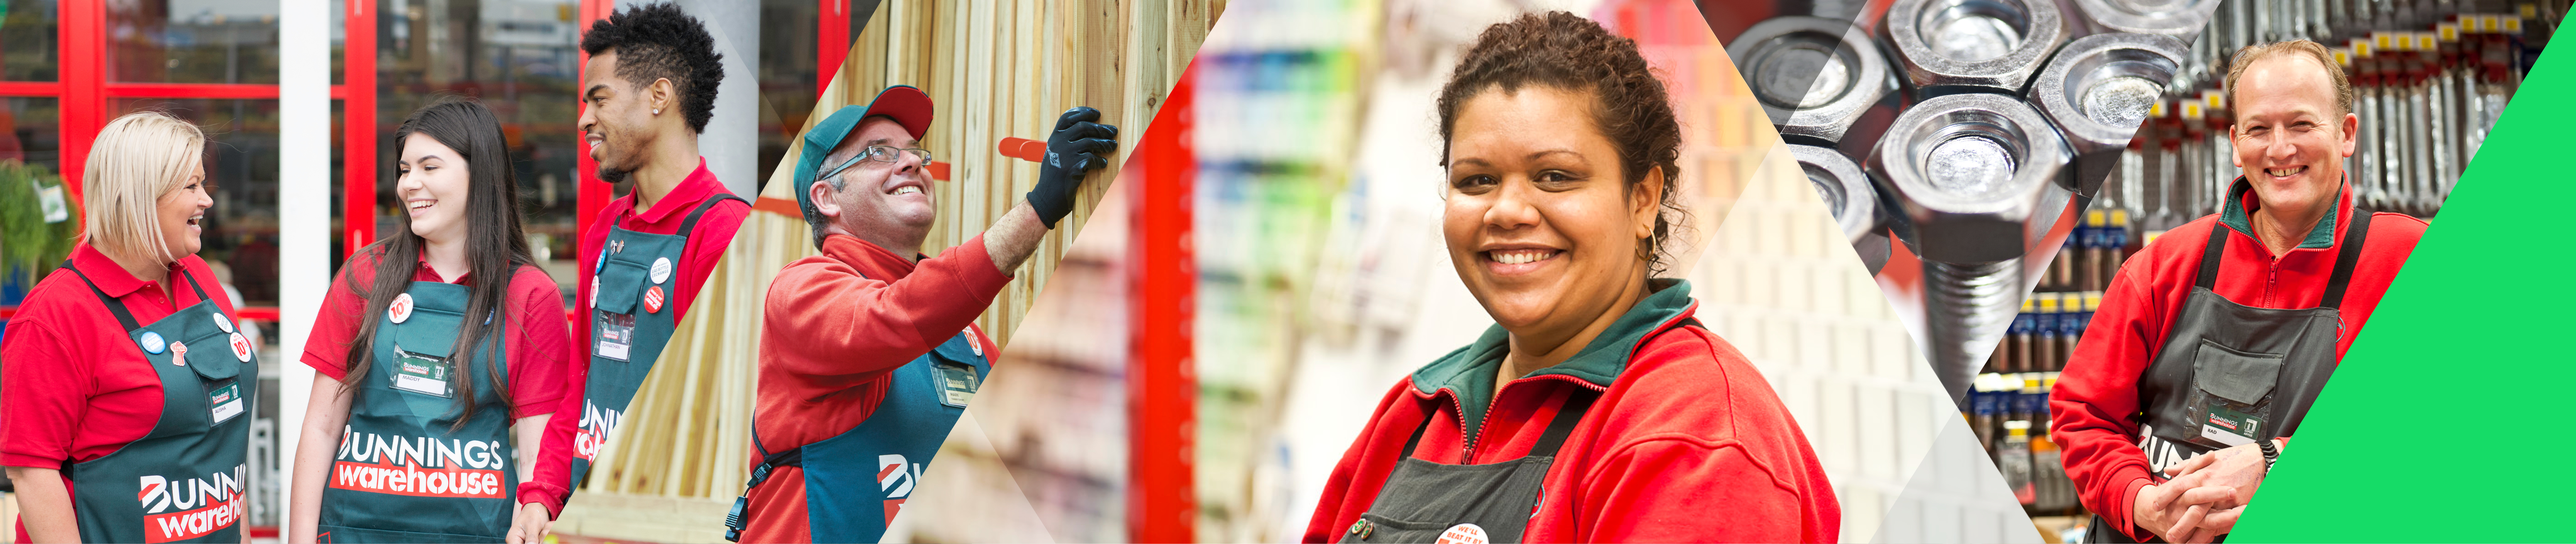 BUNNINGS WEB BANNER_FEB 2020